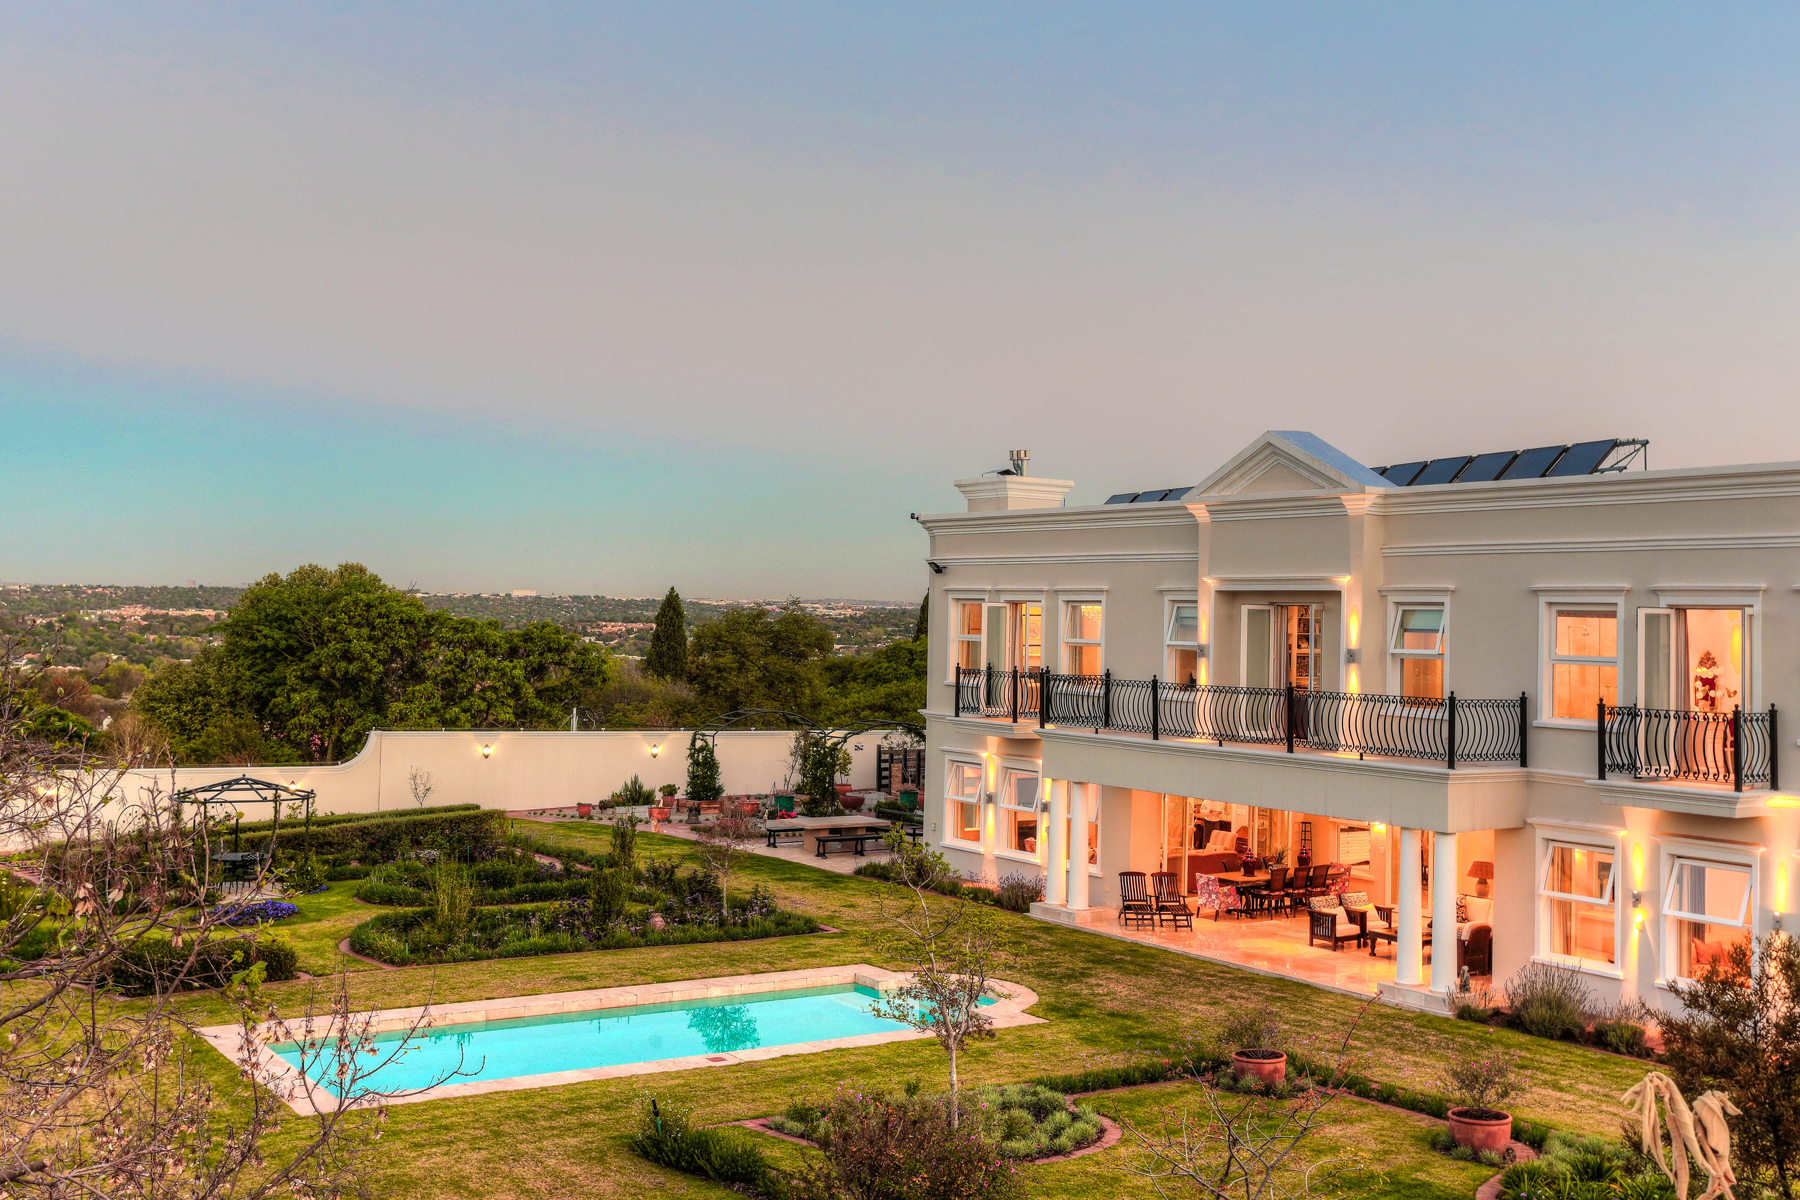 Property For Sale at Bryanston